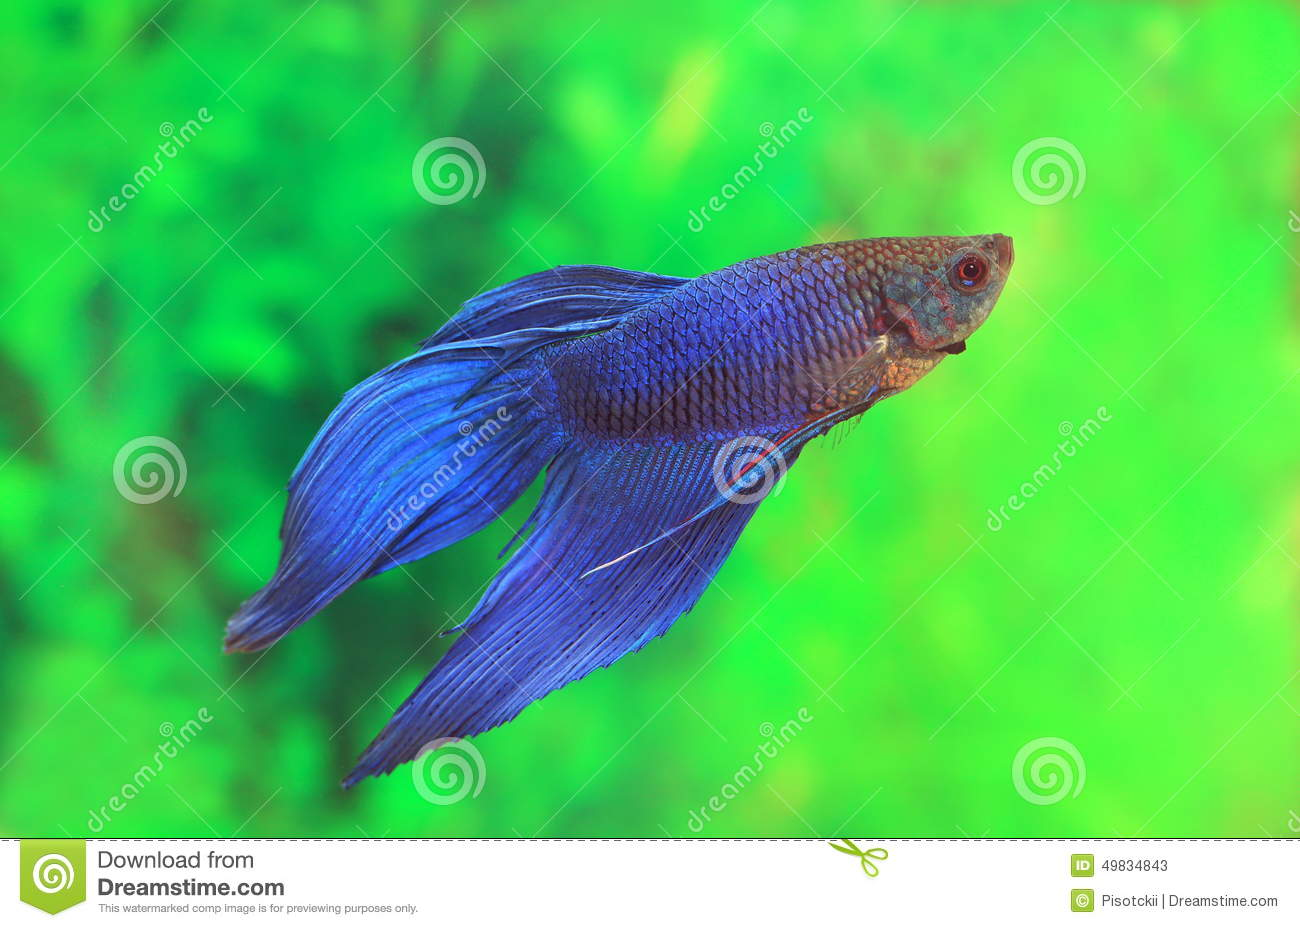 Male Of Betta Splendens Of Blue Color Stock Image - Image of animal ...